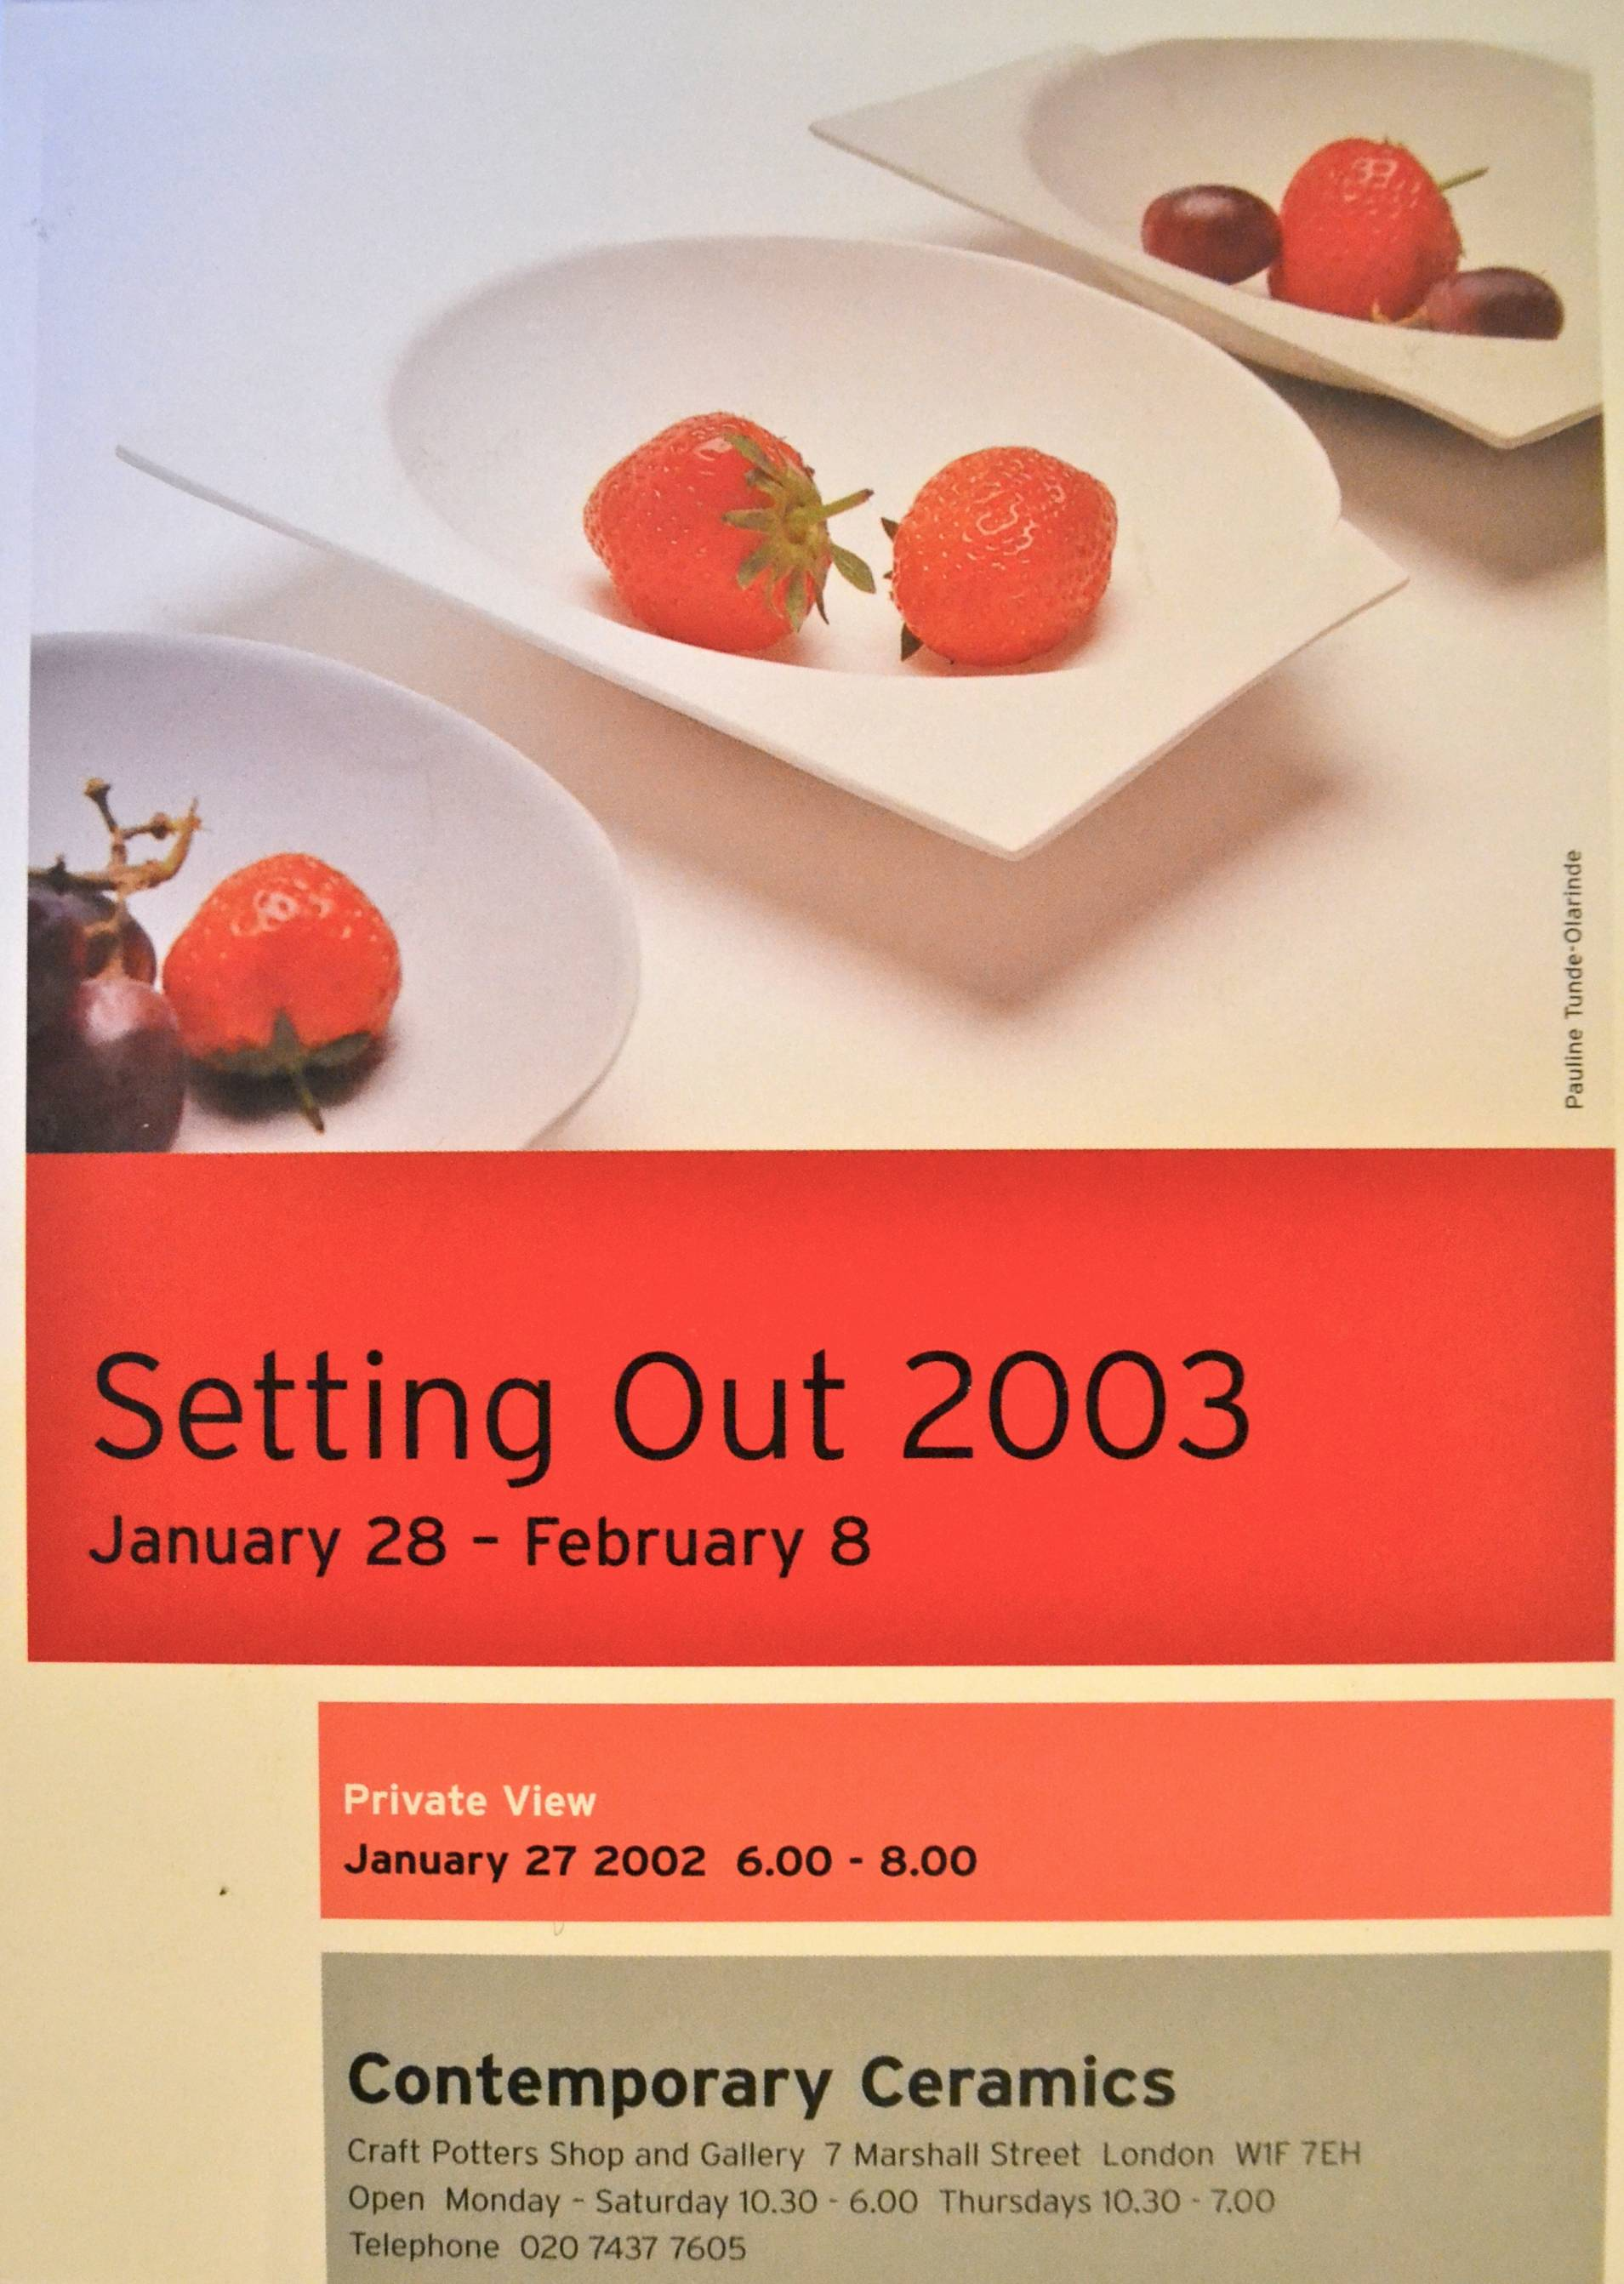 Article 'Setting Out 2003' - Image in Ceramic Review, Issue 199, Jan-Feb 03